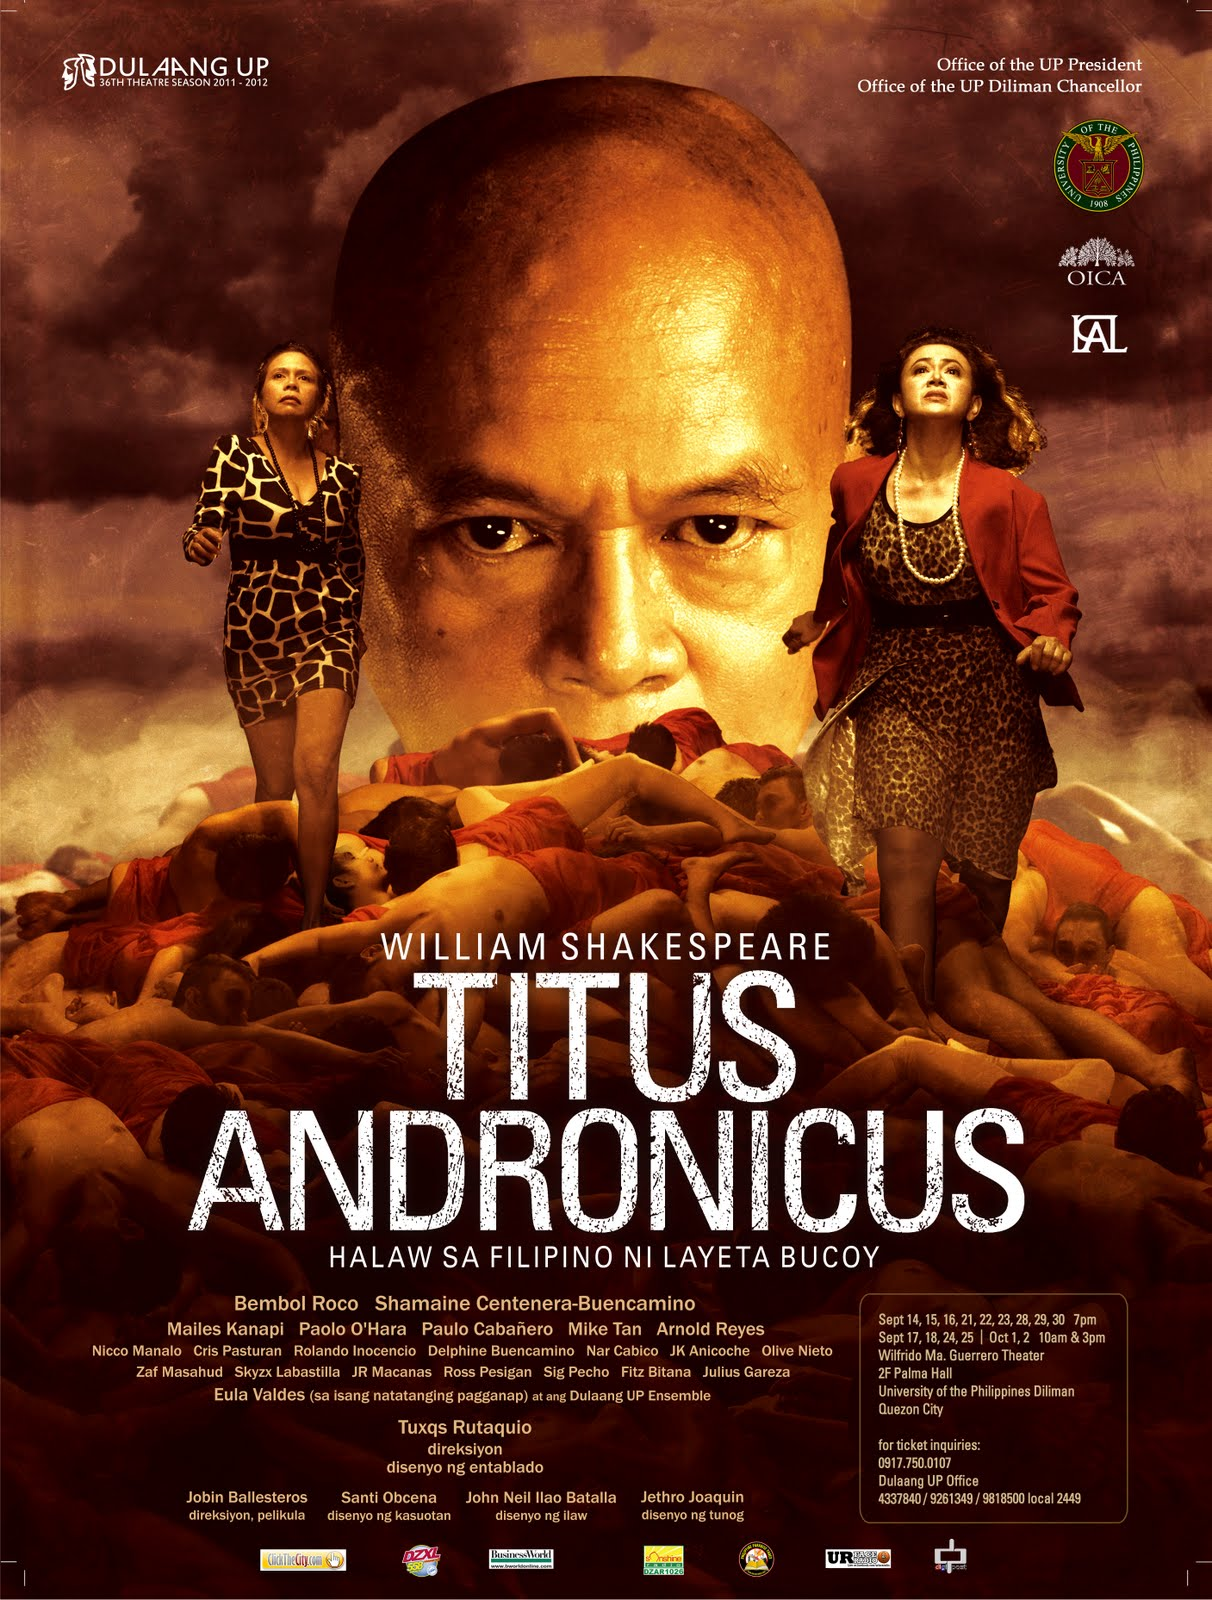 gibbs cadiz dulaang up s filipino titus andronicus opens sept  dulaang up s filipino titus andronicus opens sept 14